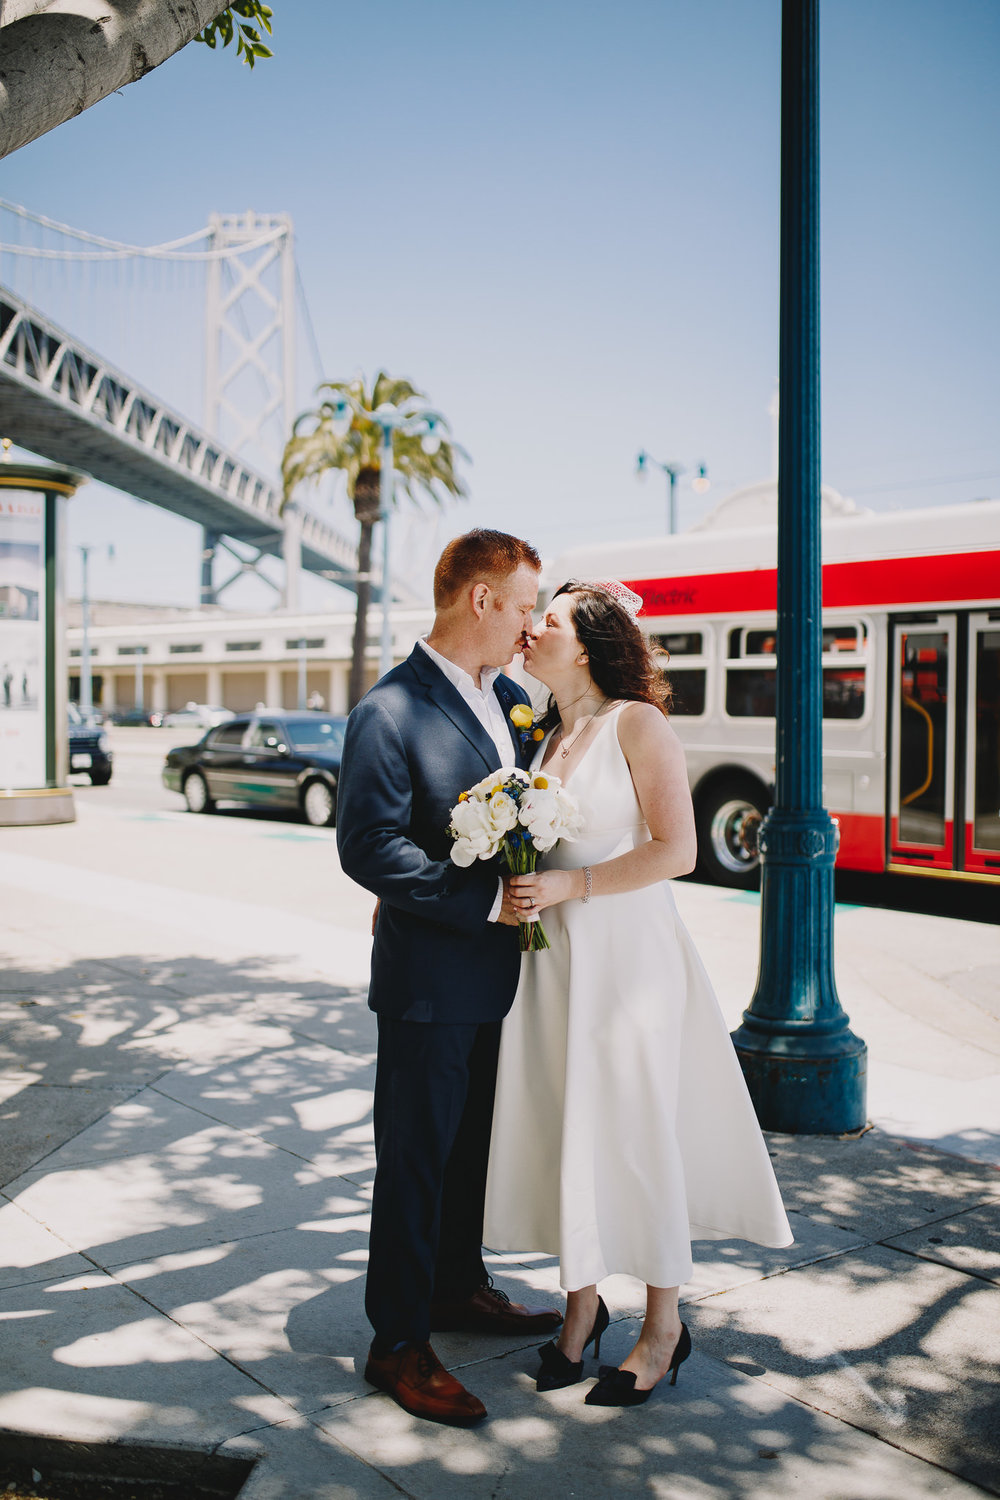 Archer Inspired Photography SF City Hall Elopement Wedding Lifestyle Documentary Affordable Photographer-314.jpg